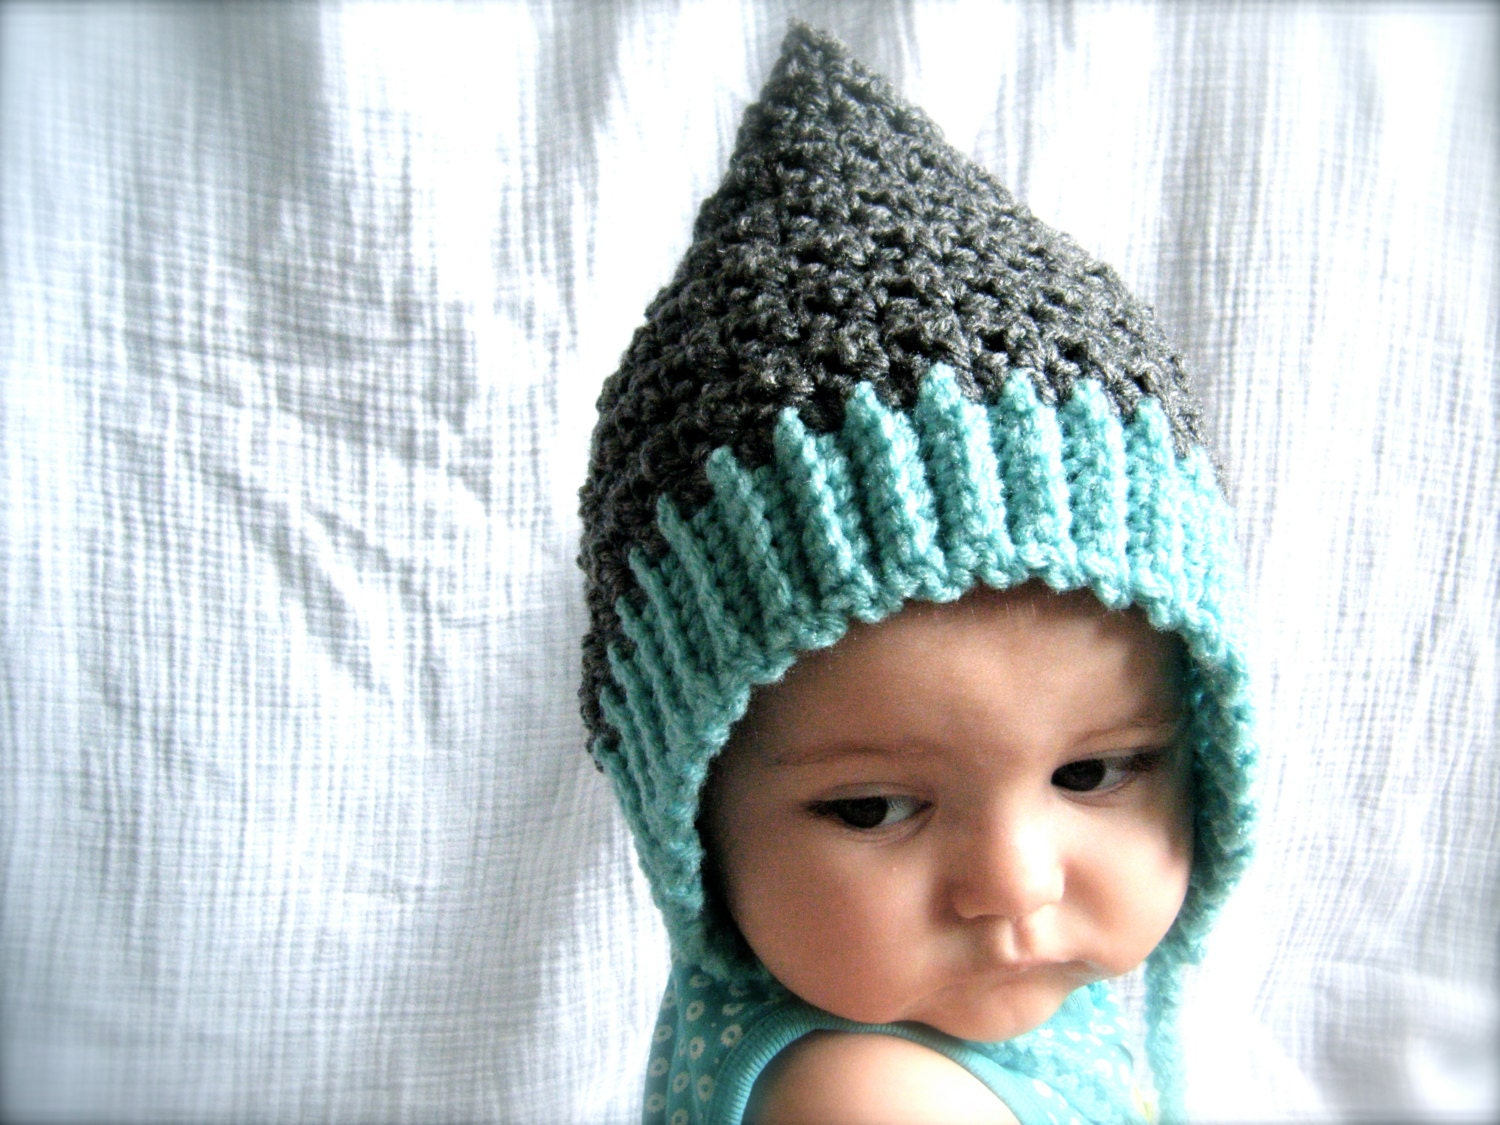 Free Crochet Pattern For Gnome Hat : PATTERN: Seedling Pixie Bonnet baby hat 3 Sizes easy